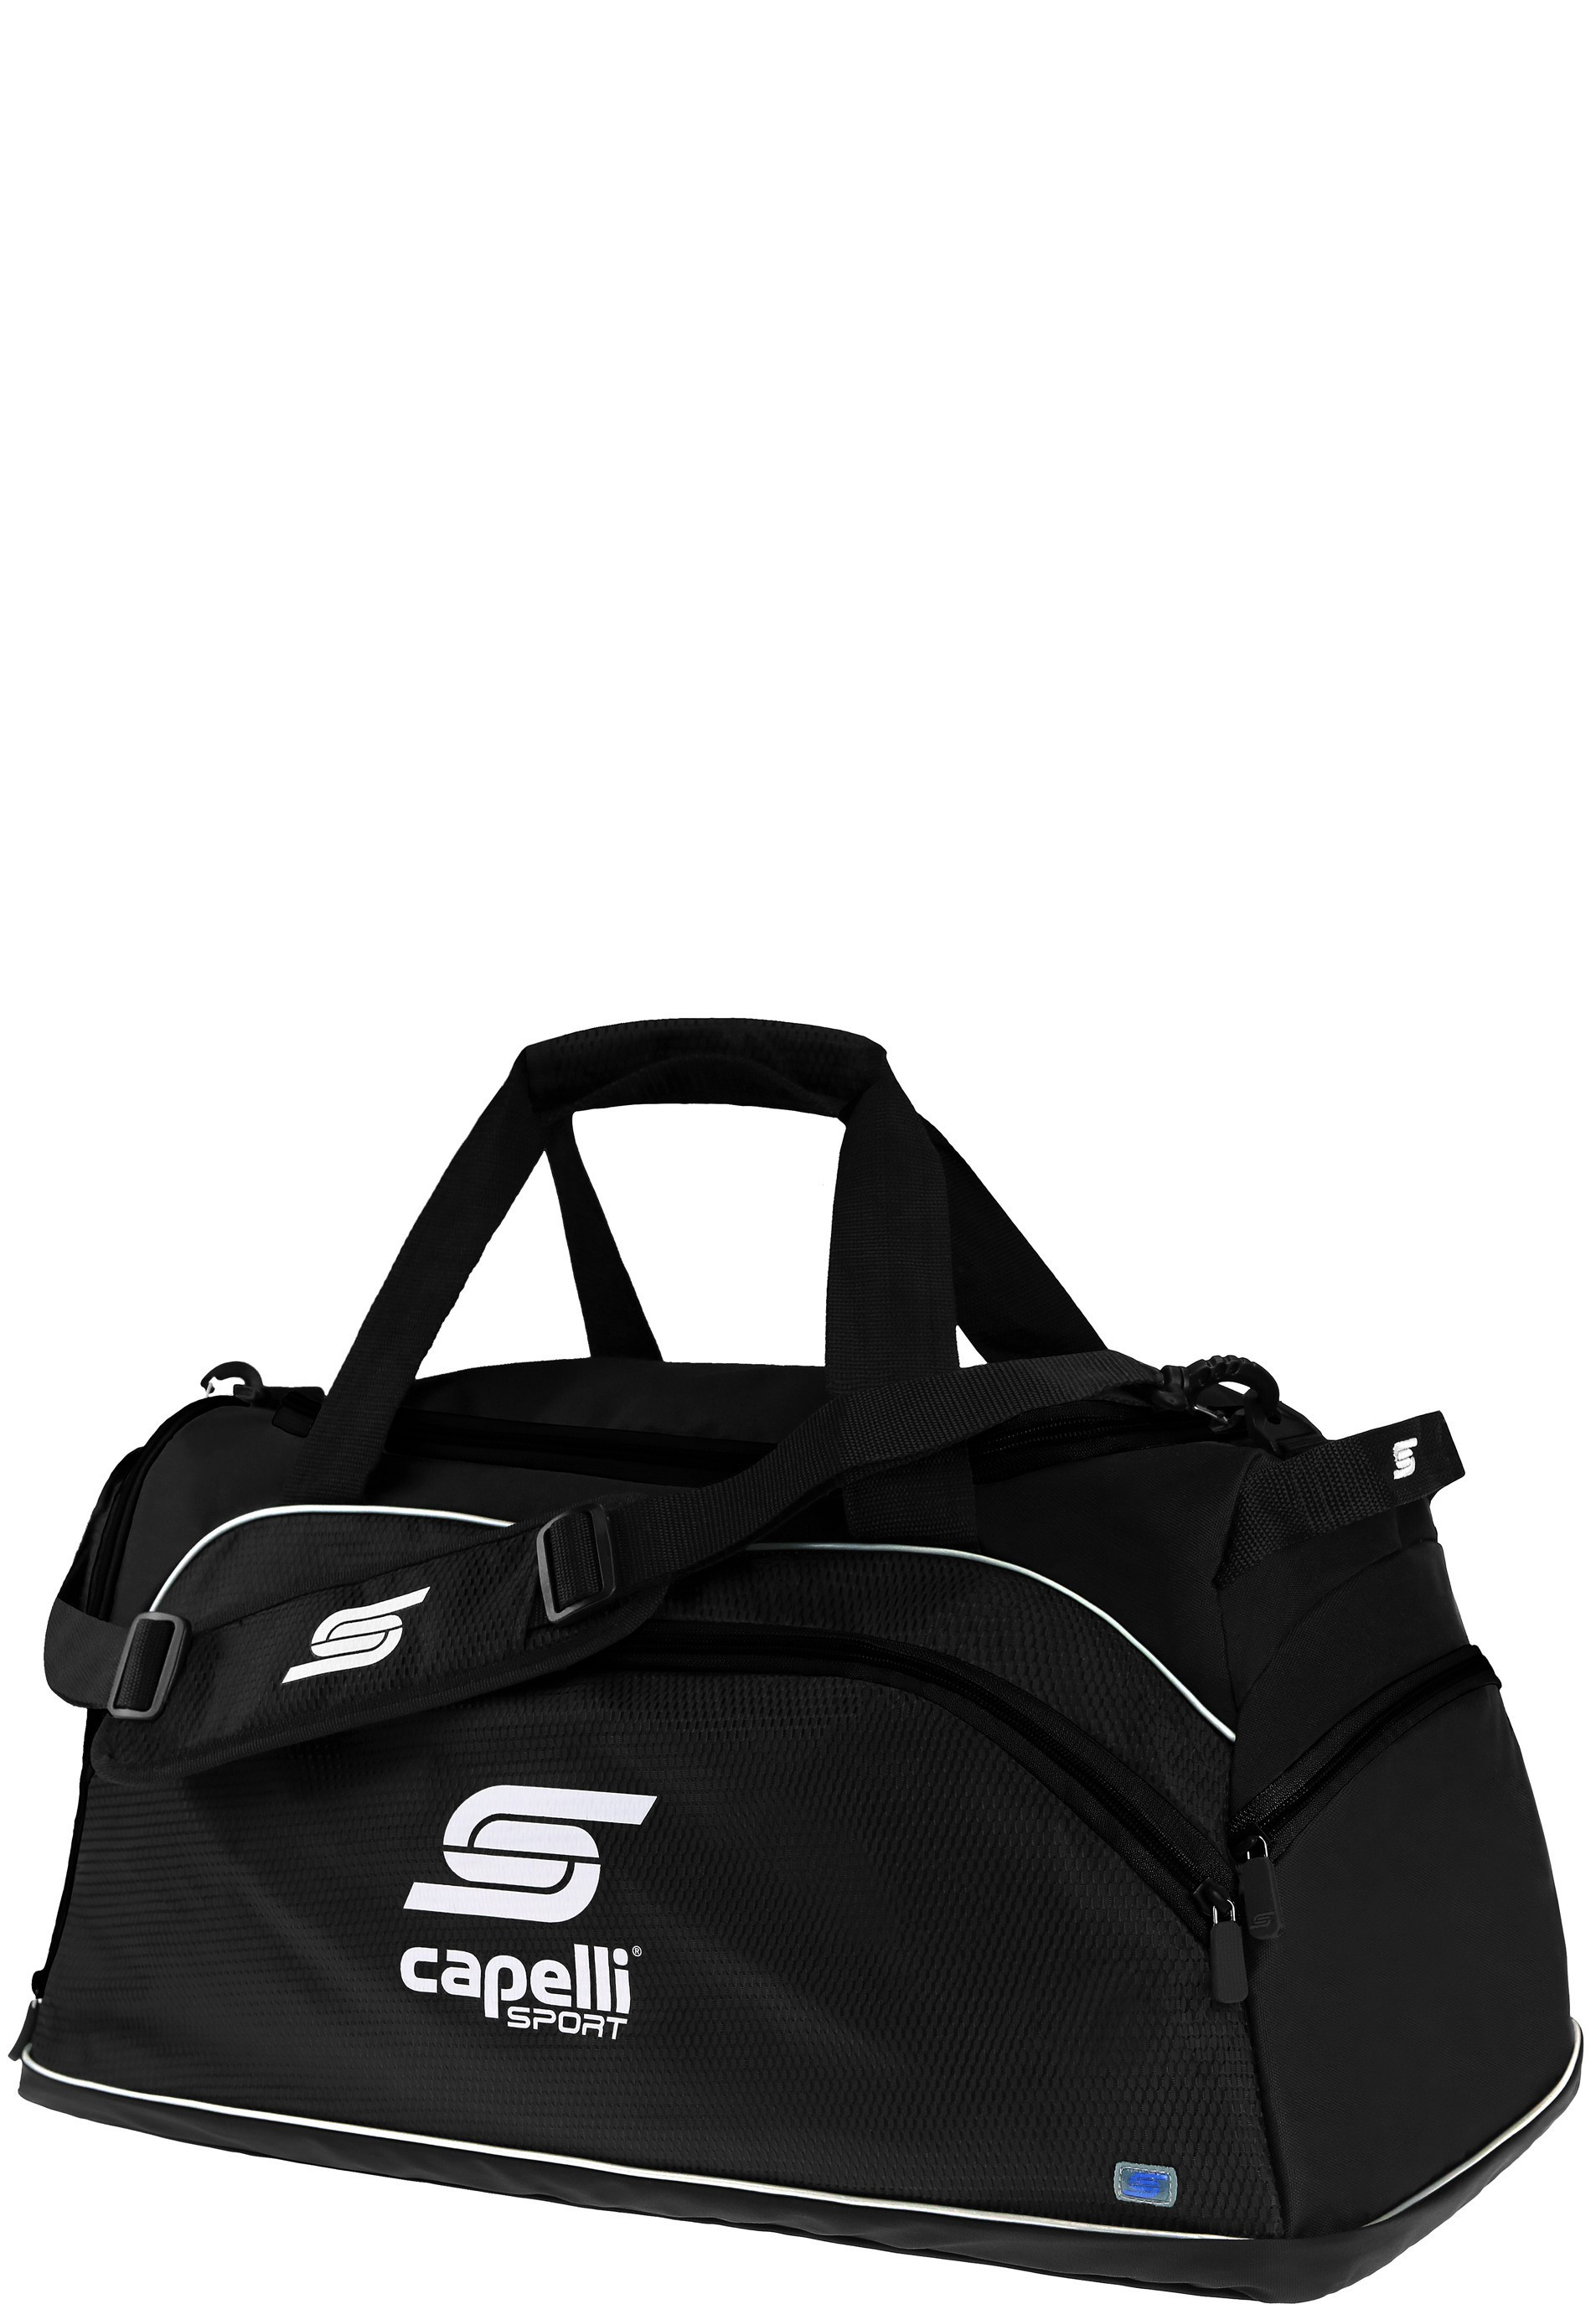 CS ONE Team Duffle Bag- Medium